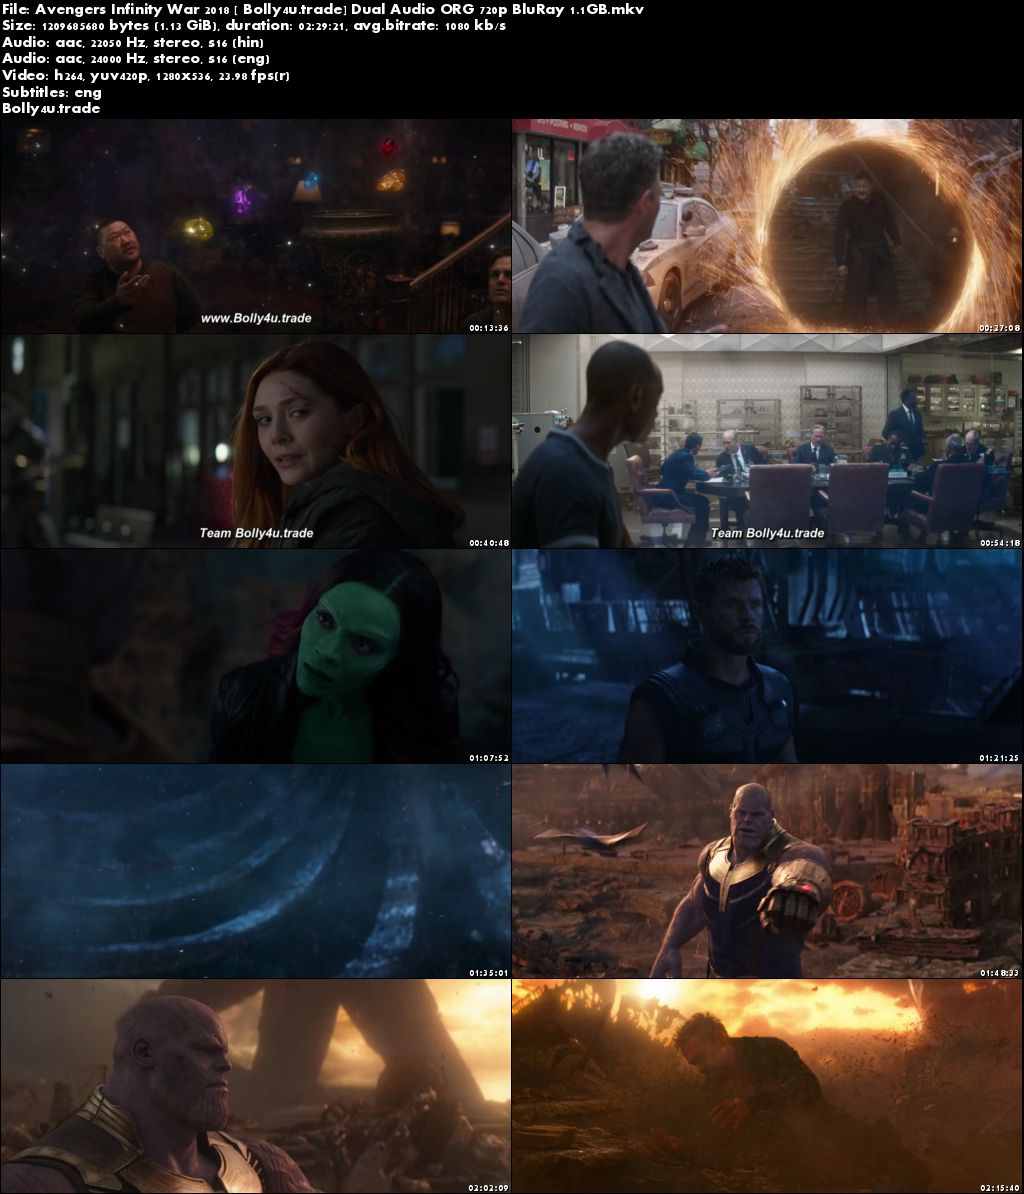 Avengers Infinity War 2018 BluRay 500MB Hindi Dubbed Dual Audio ORG 480p Download